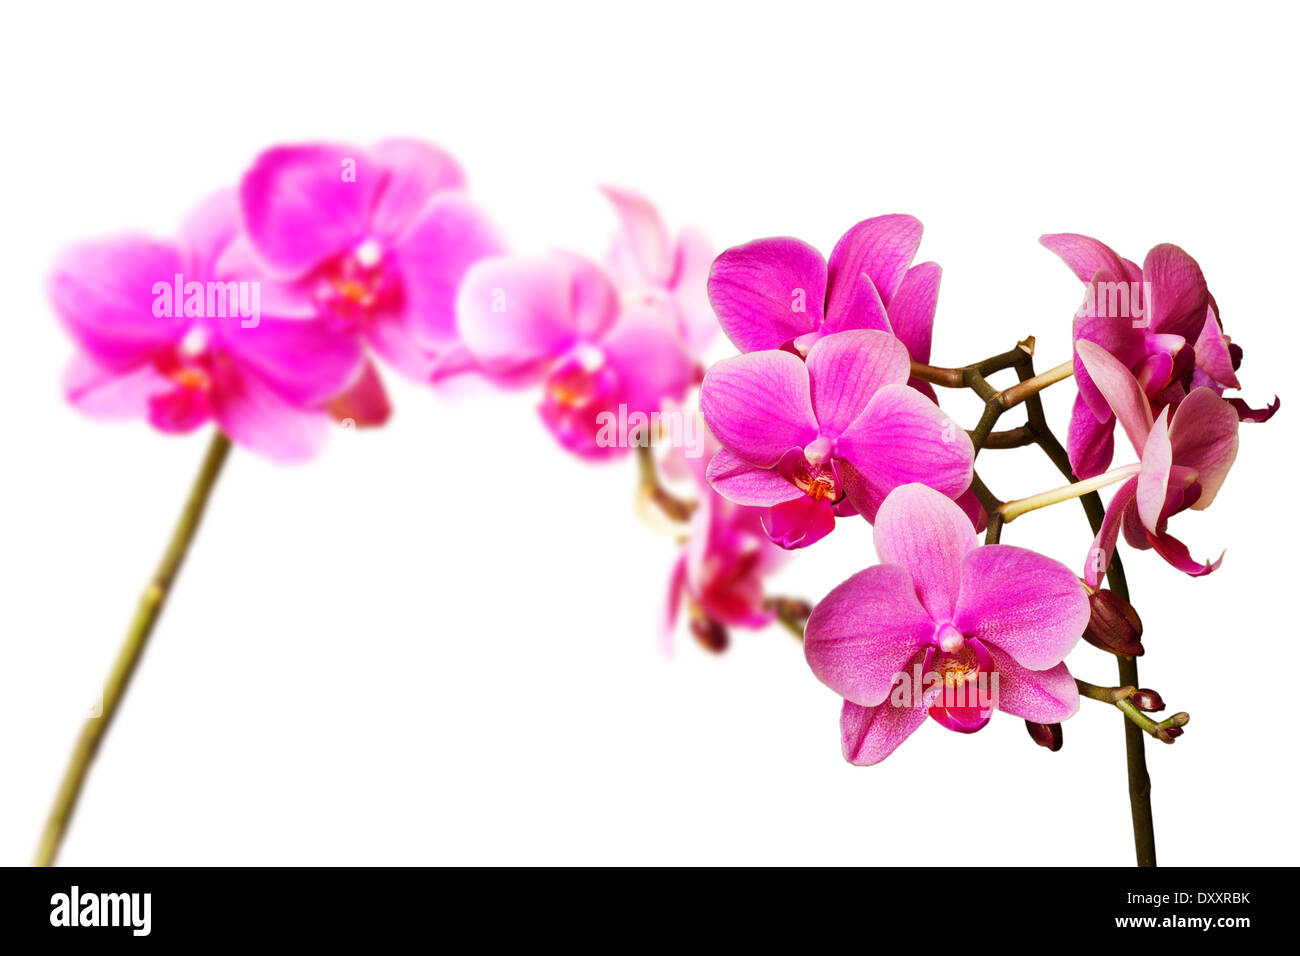 two pink orchids isolated on white background - Stock Image